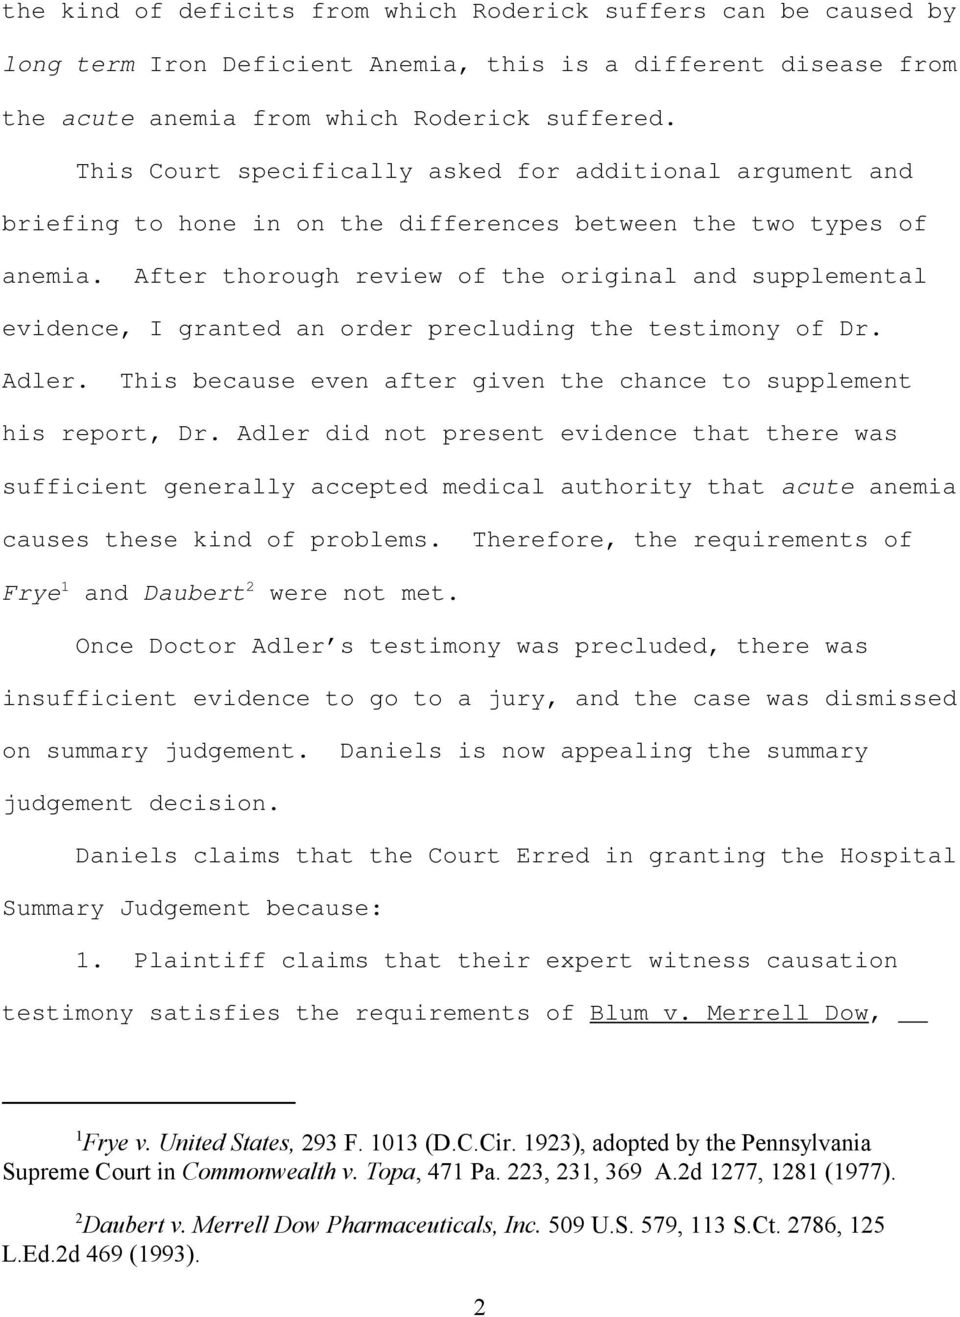 After thorough review of the original and supplemental evidence, I granted an order precluding the testimony of Dr. Adler. This because even after given the chance to supplement his report, Dr.